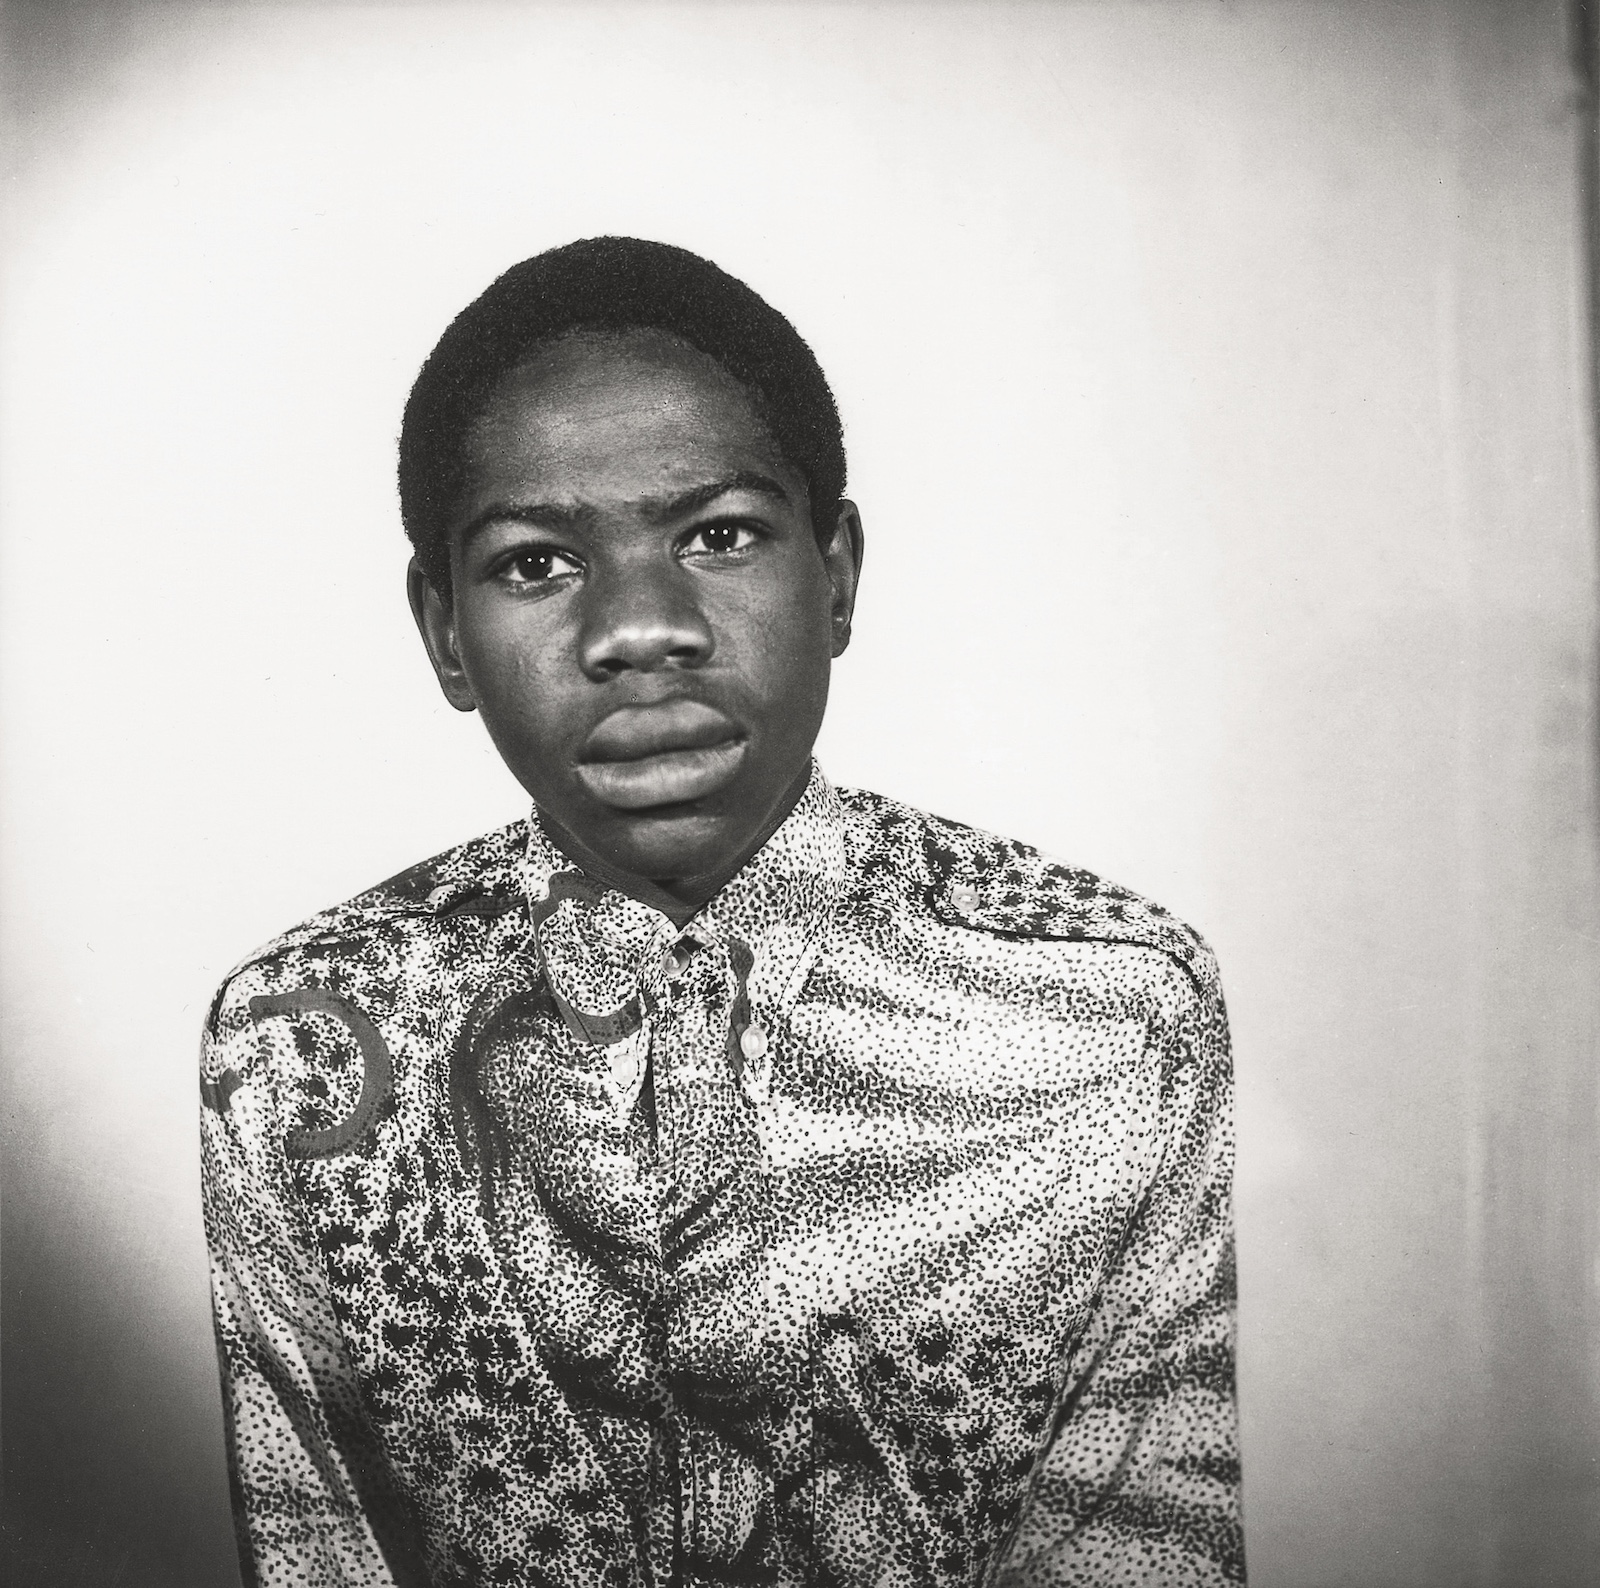 1968. Collection Fondation Cartier pour l'art contemporain, Paris © Malick Sidibé Extract from Mali Twist (Éditions Xavier Barral, Fondation Cartier pour l'art contemporain, 2017)